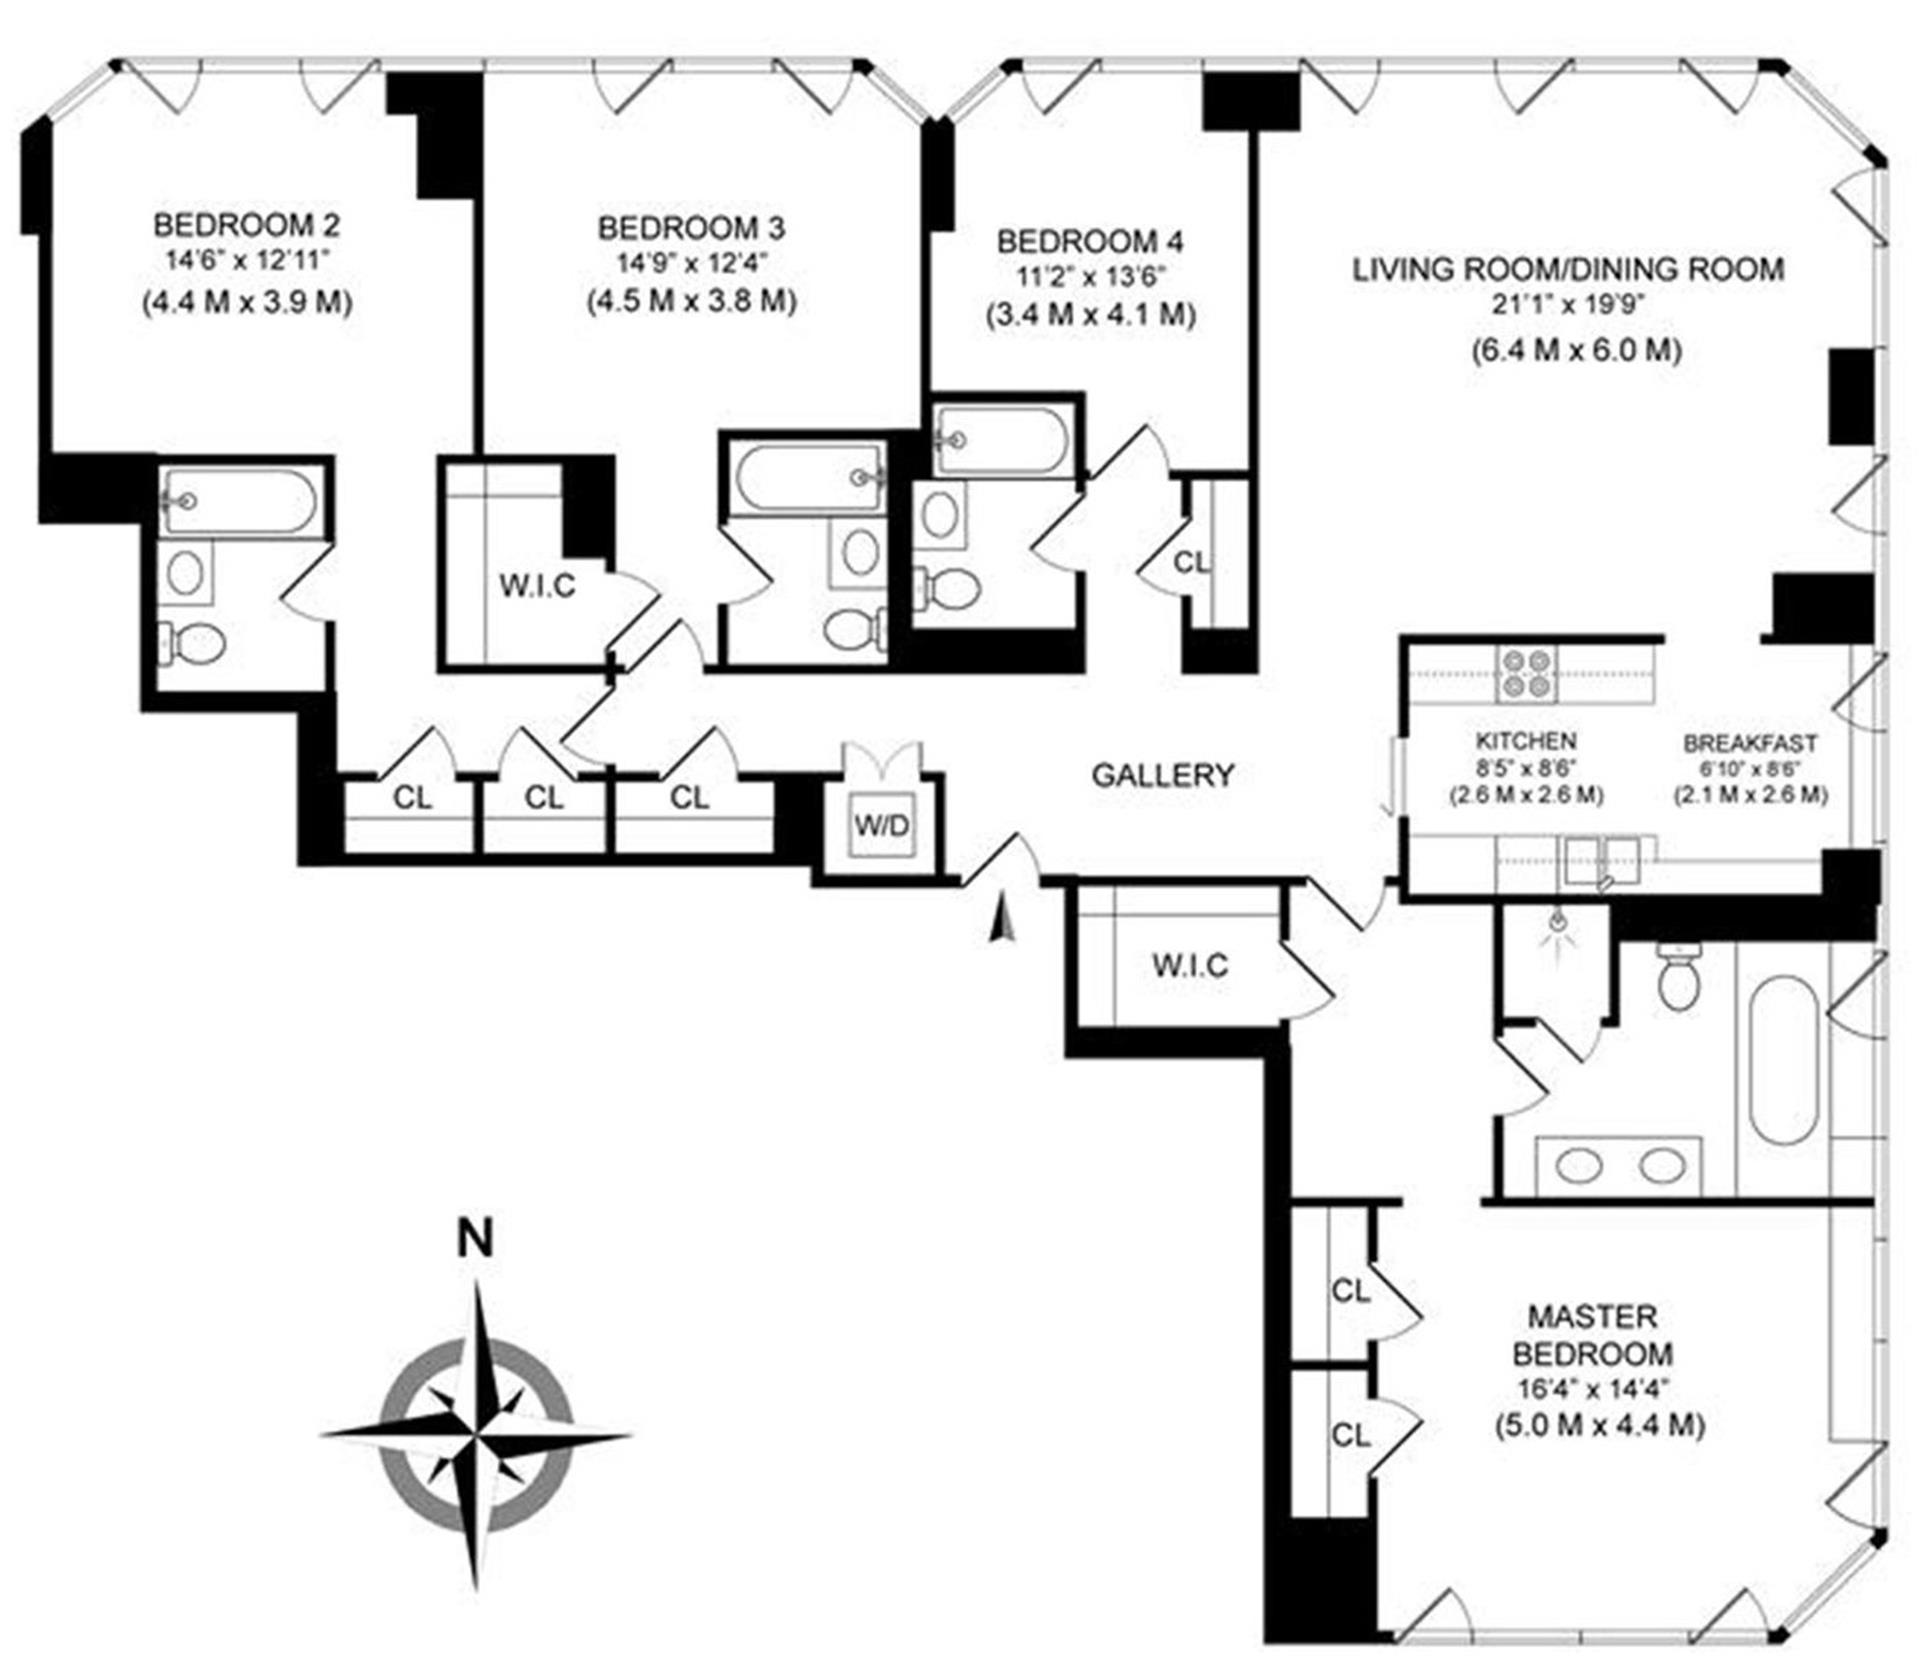 Floor plan of 300 East 55th St, 23A - Midtown, New York